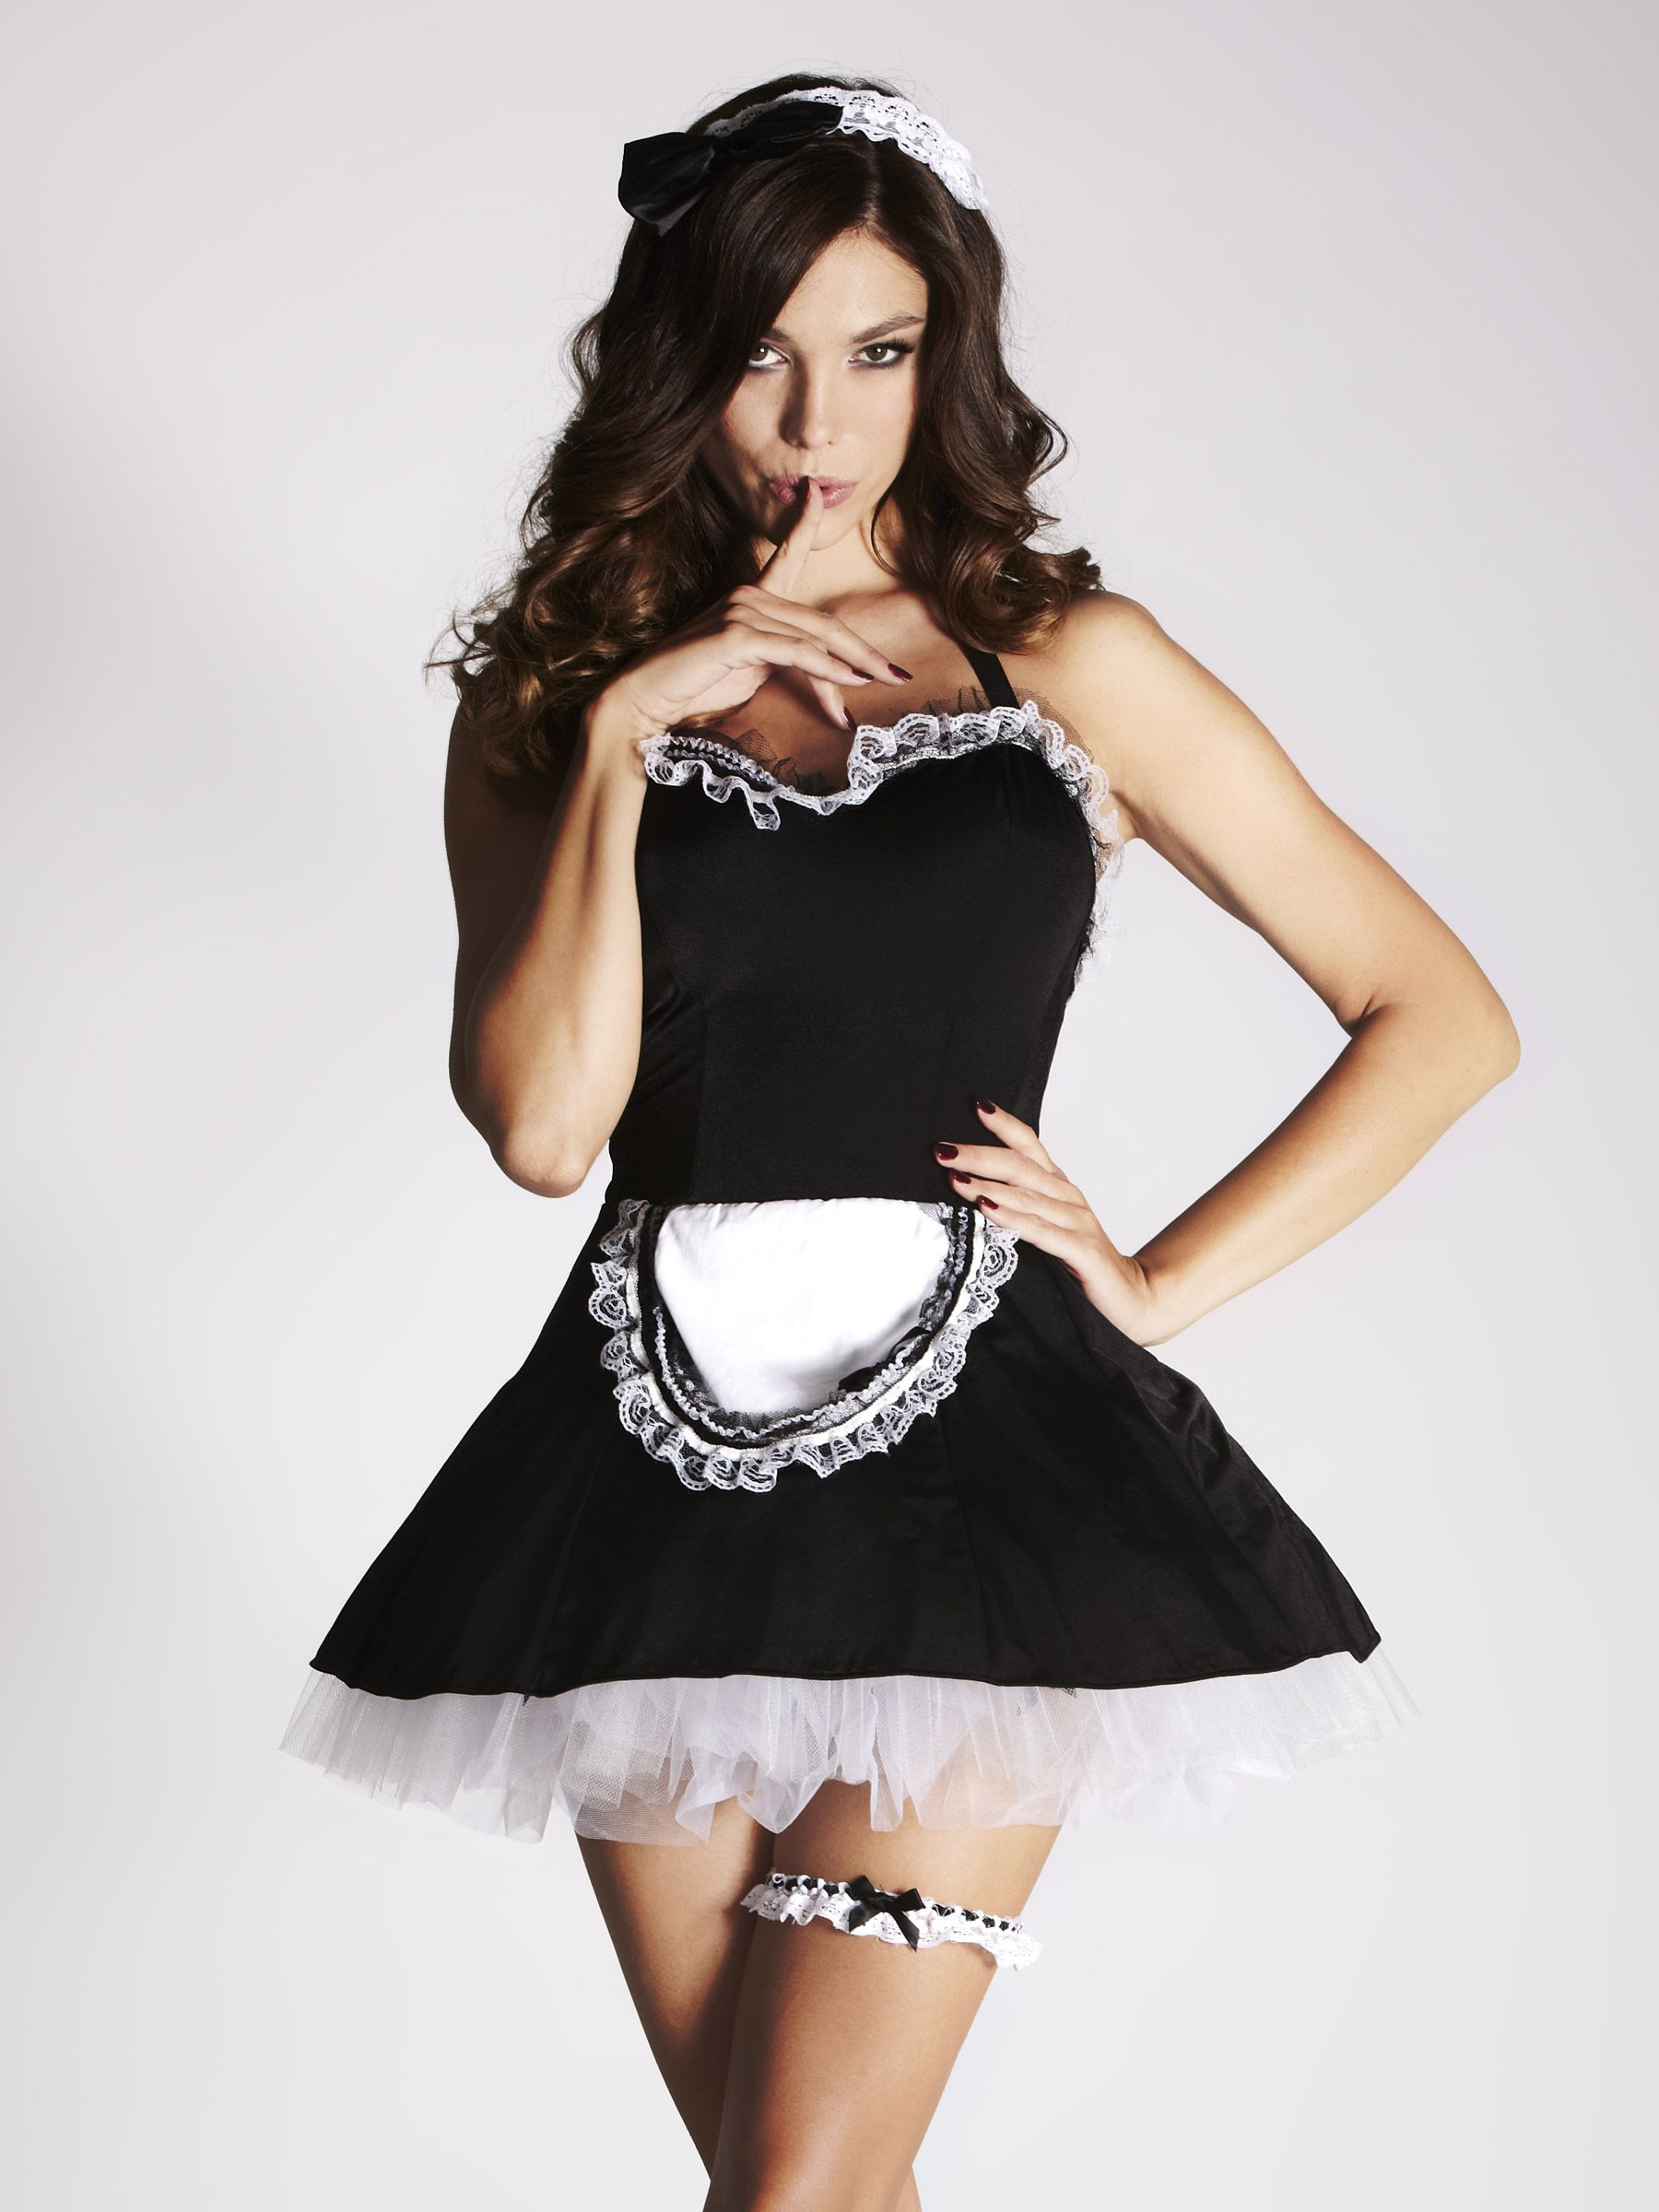 White apron fancy dress - Mimi Maid Outfit Embrace Your Sexy Side In The Mimi Fancy Dress Maid Outfit